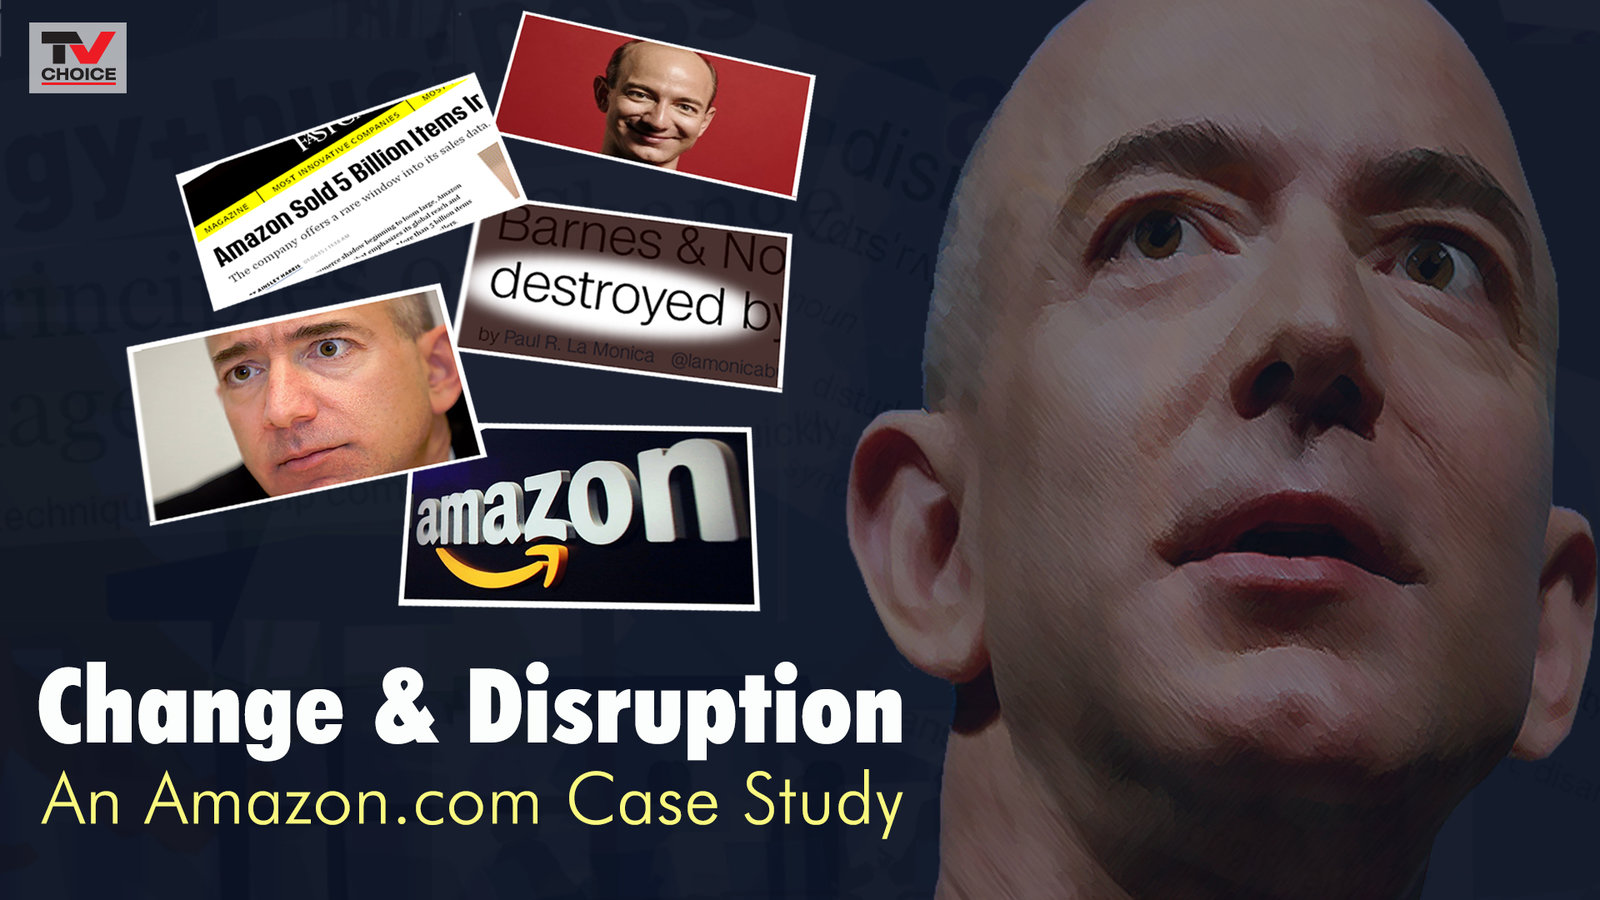 Change & Disruption - An Amazon.com Case Study